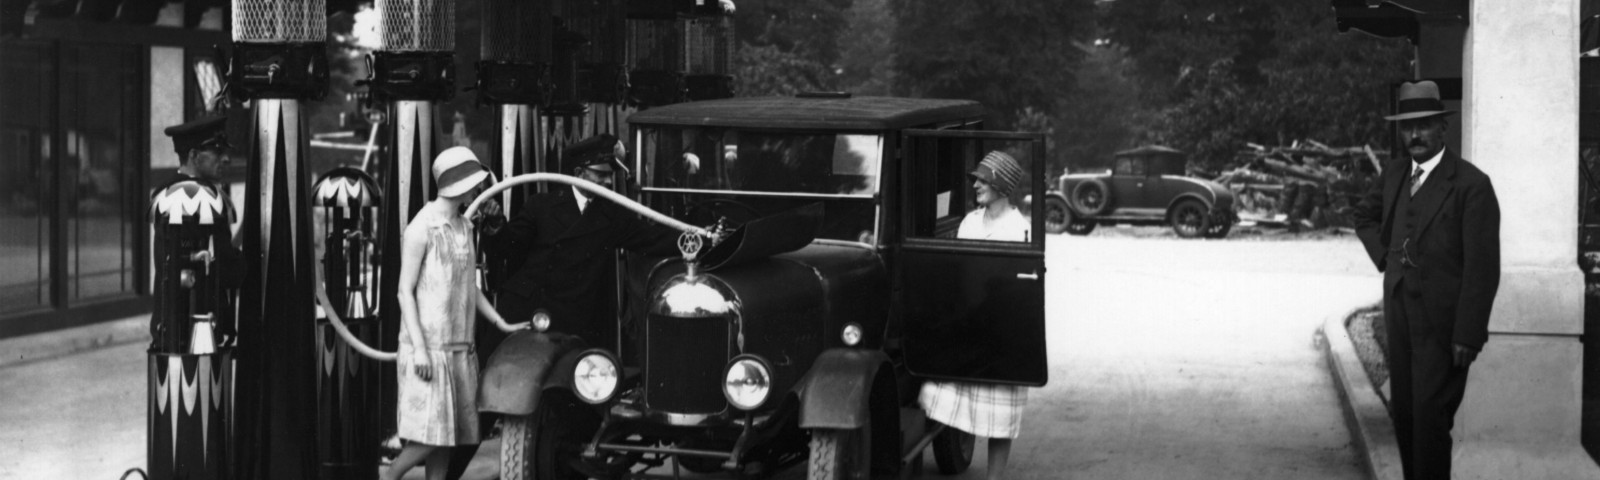 A woman's car being filled up at a petrol station in 1929.